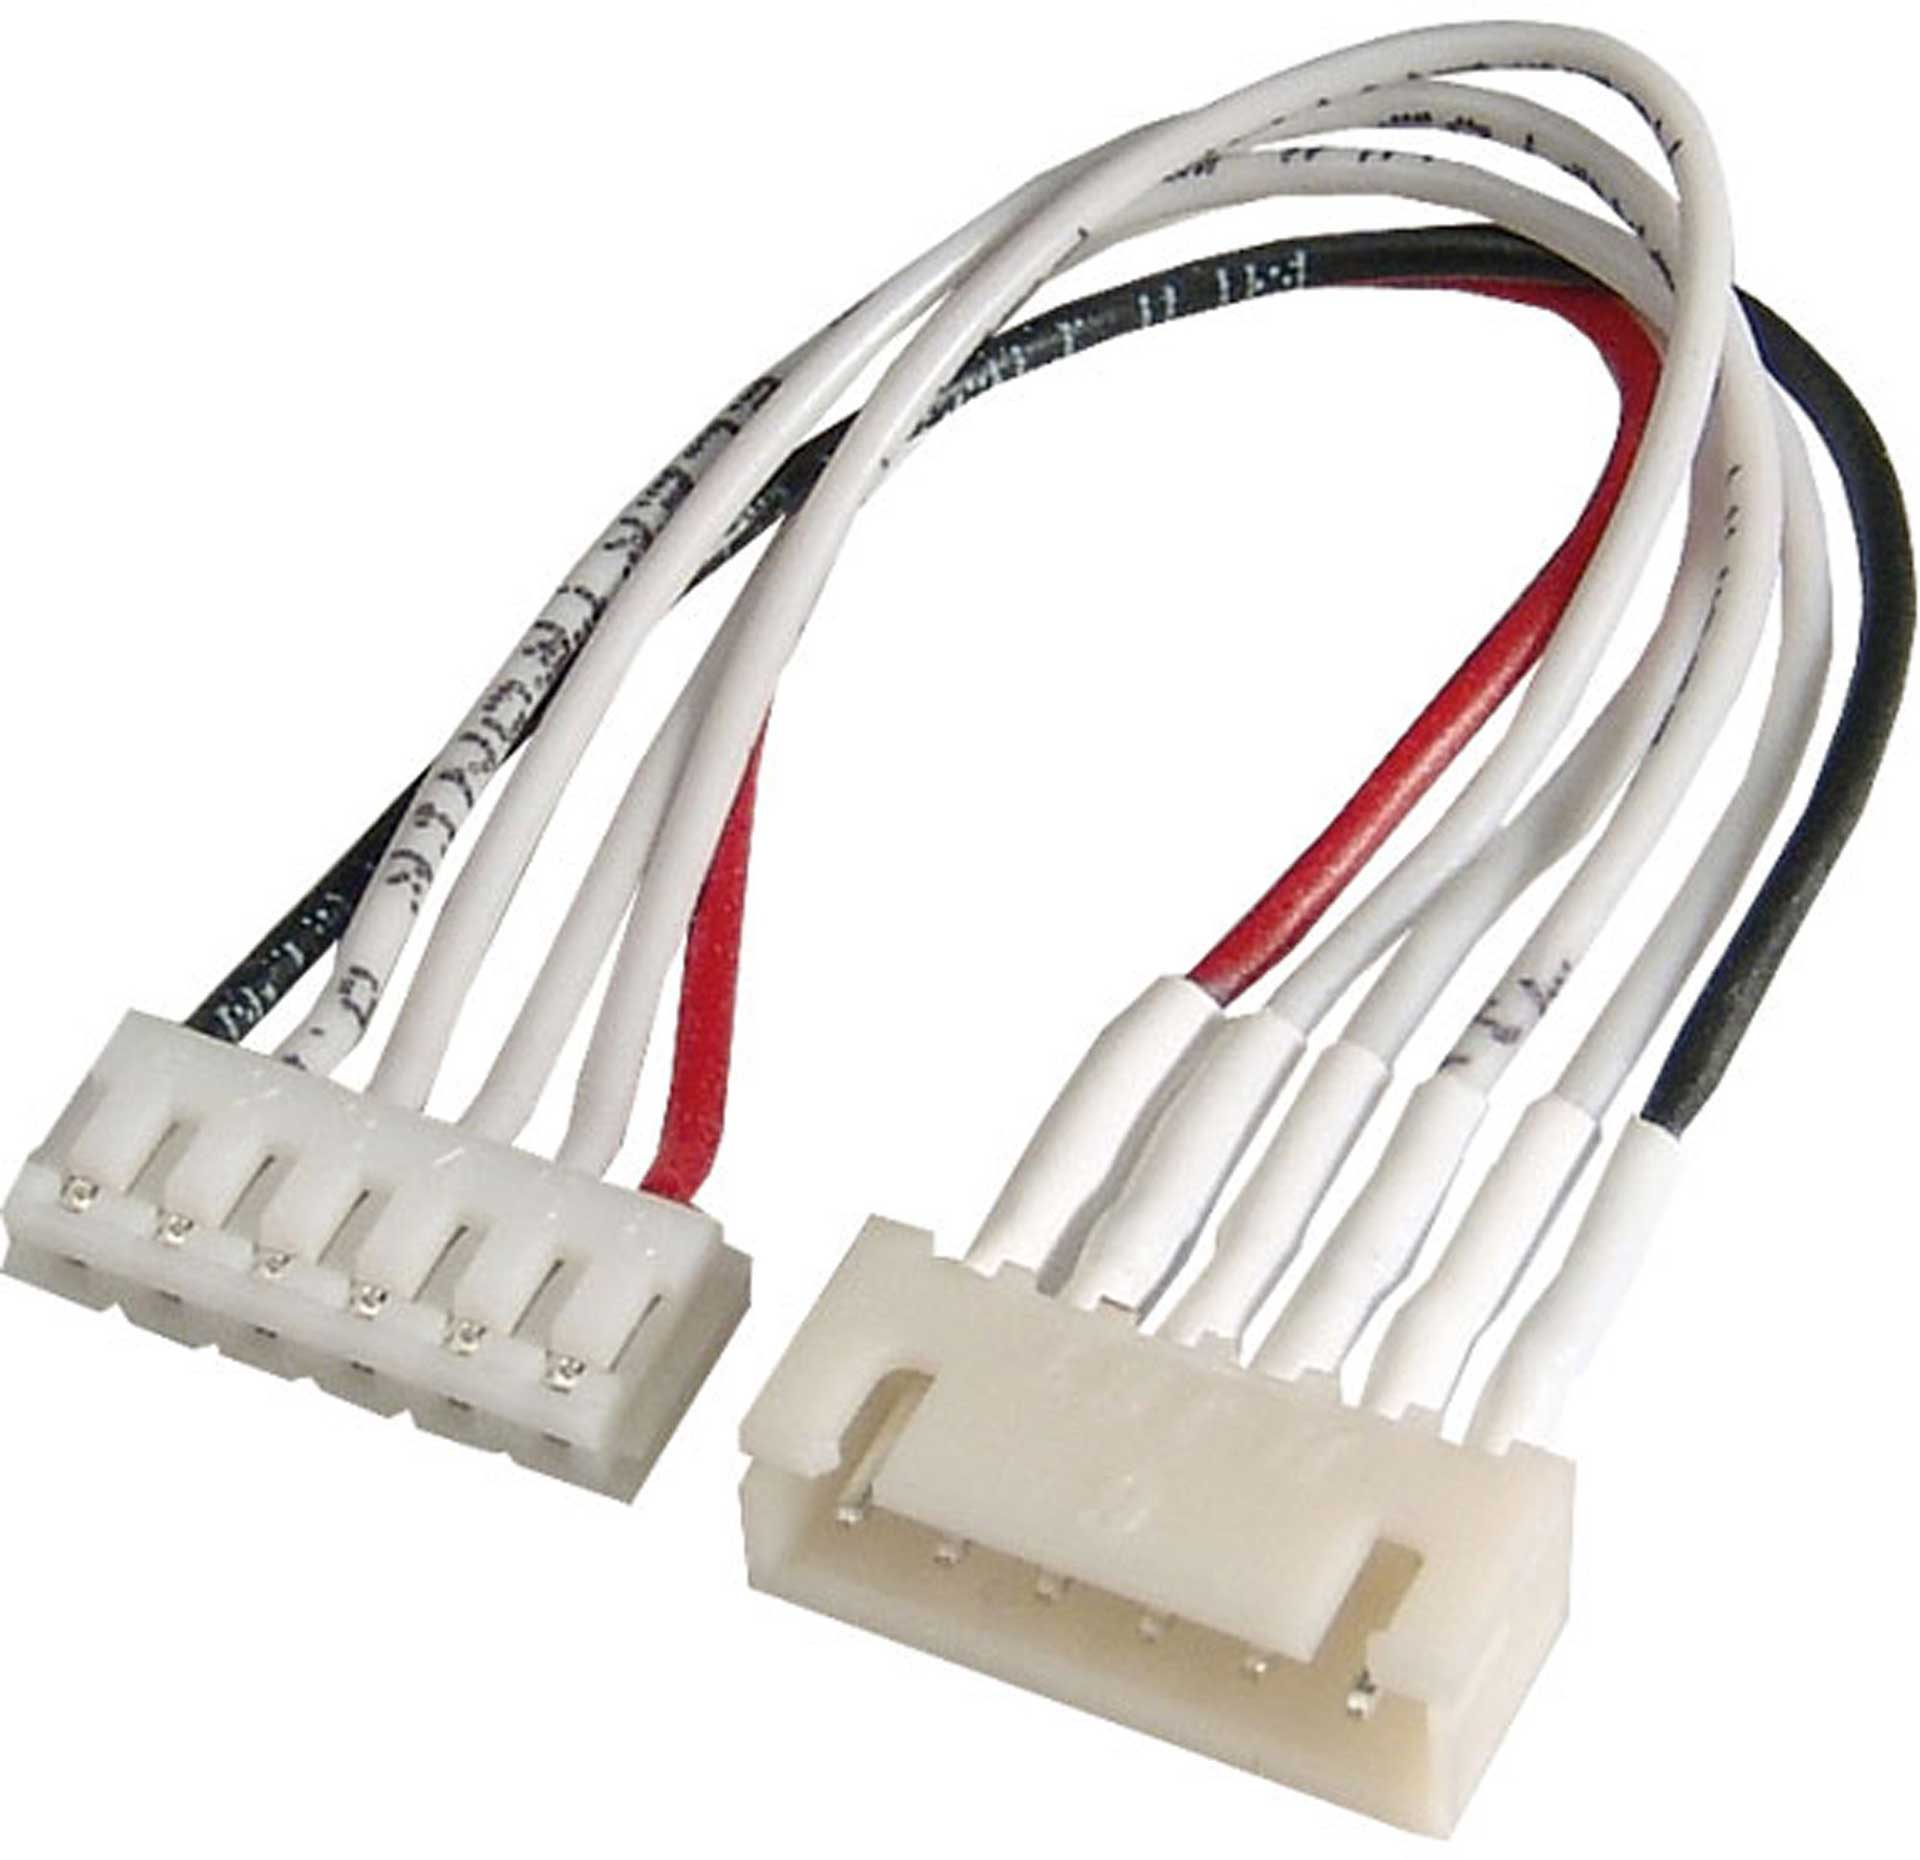 MODELLBAU LINDINGER SENSOR ADAPTER CABLE XH TO 5S 1PCS.